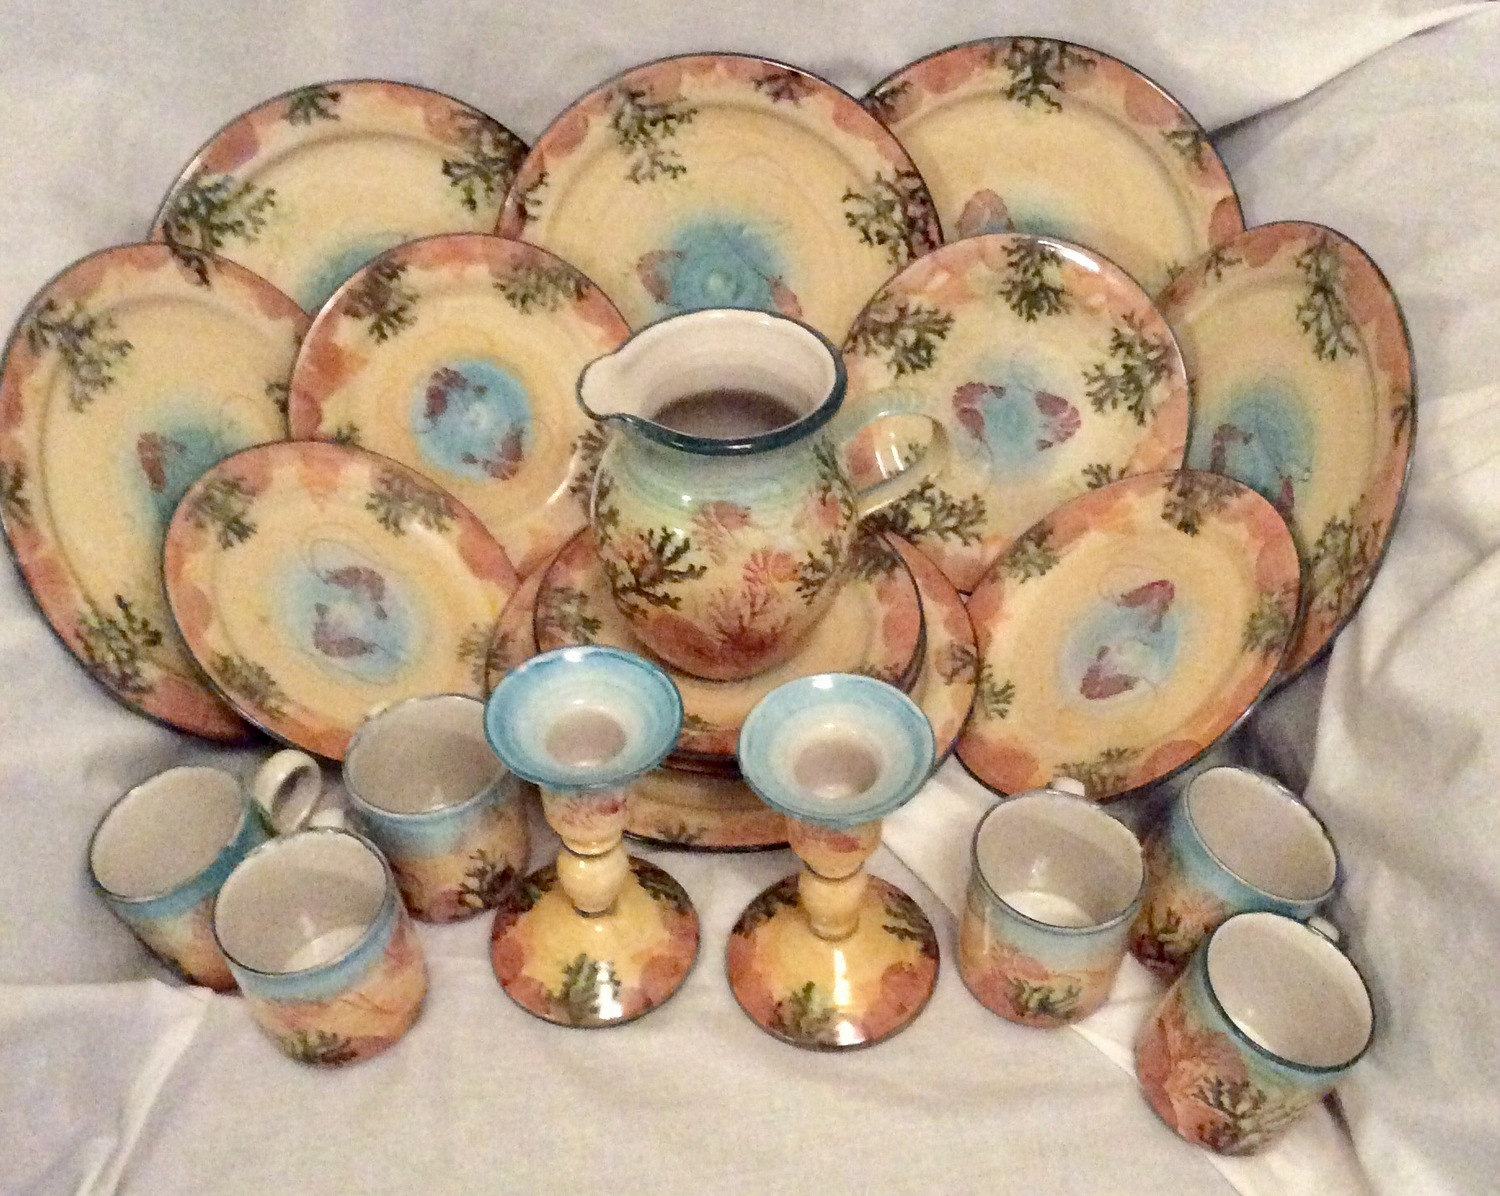 Lot 34 - SCOTTISH TAIN POTTERY 21 PIECE LOBSTER DESIGN SET VGC NO DAMAGE.